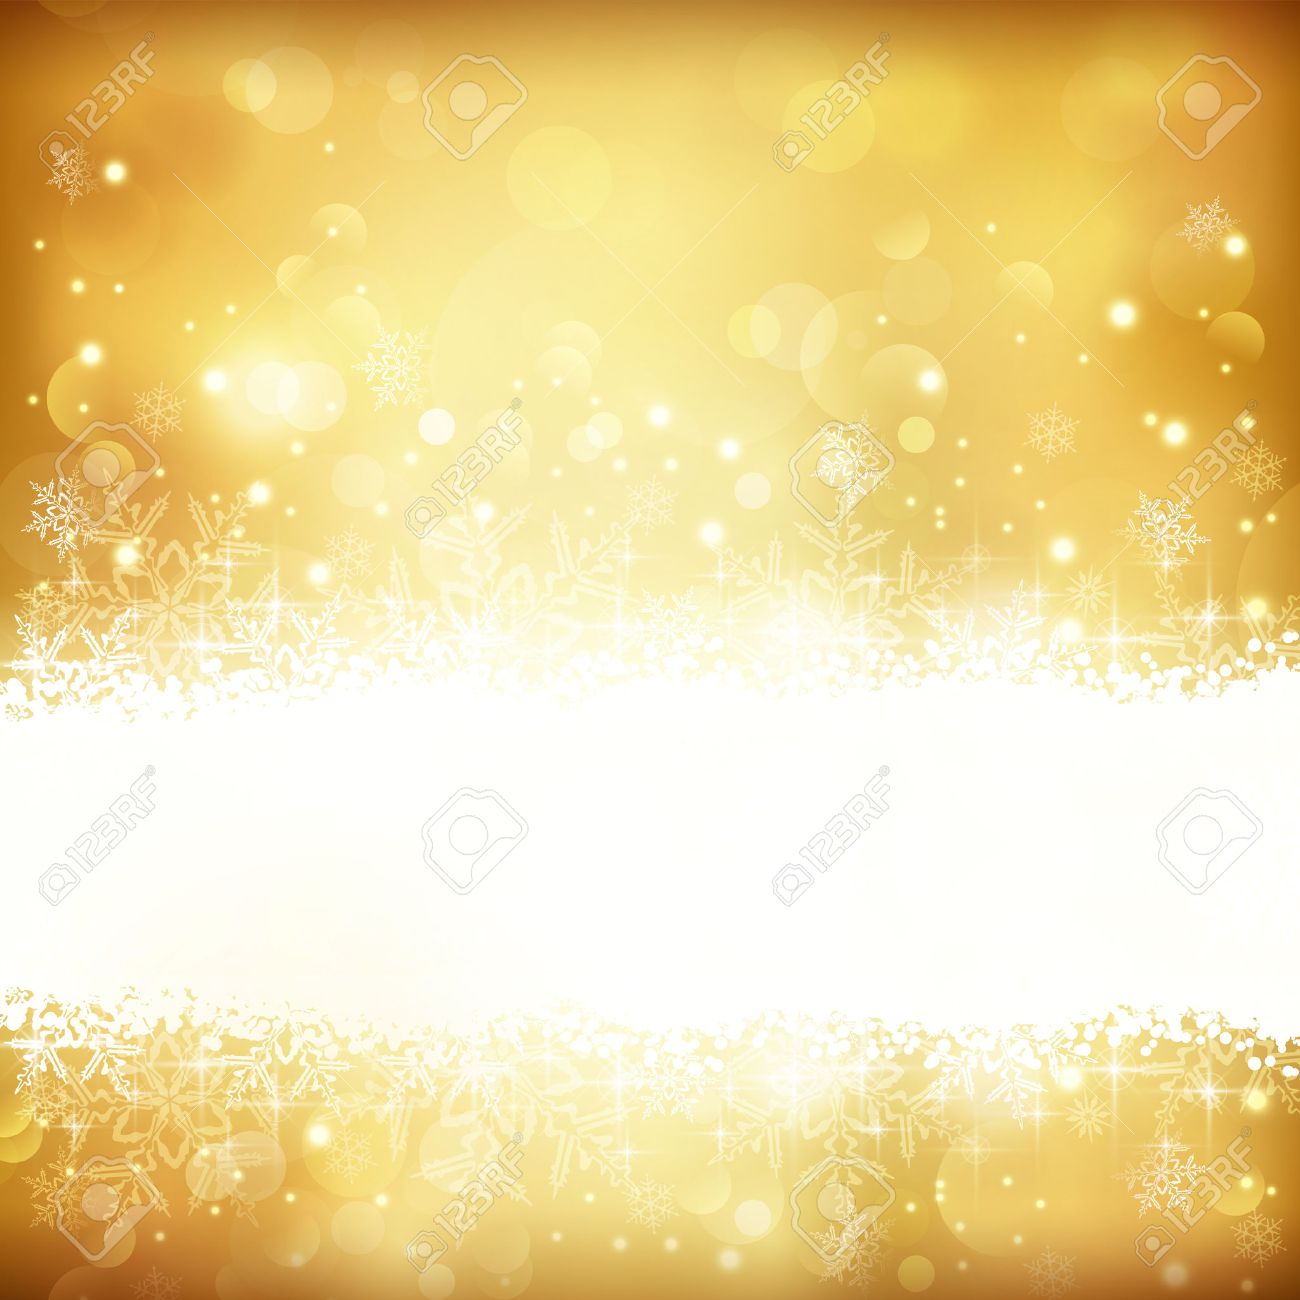 Festive gold background with out of focus light dots, stars,snowflakes and copy space. Stock Vector - 23848760